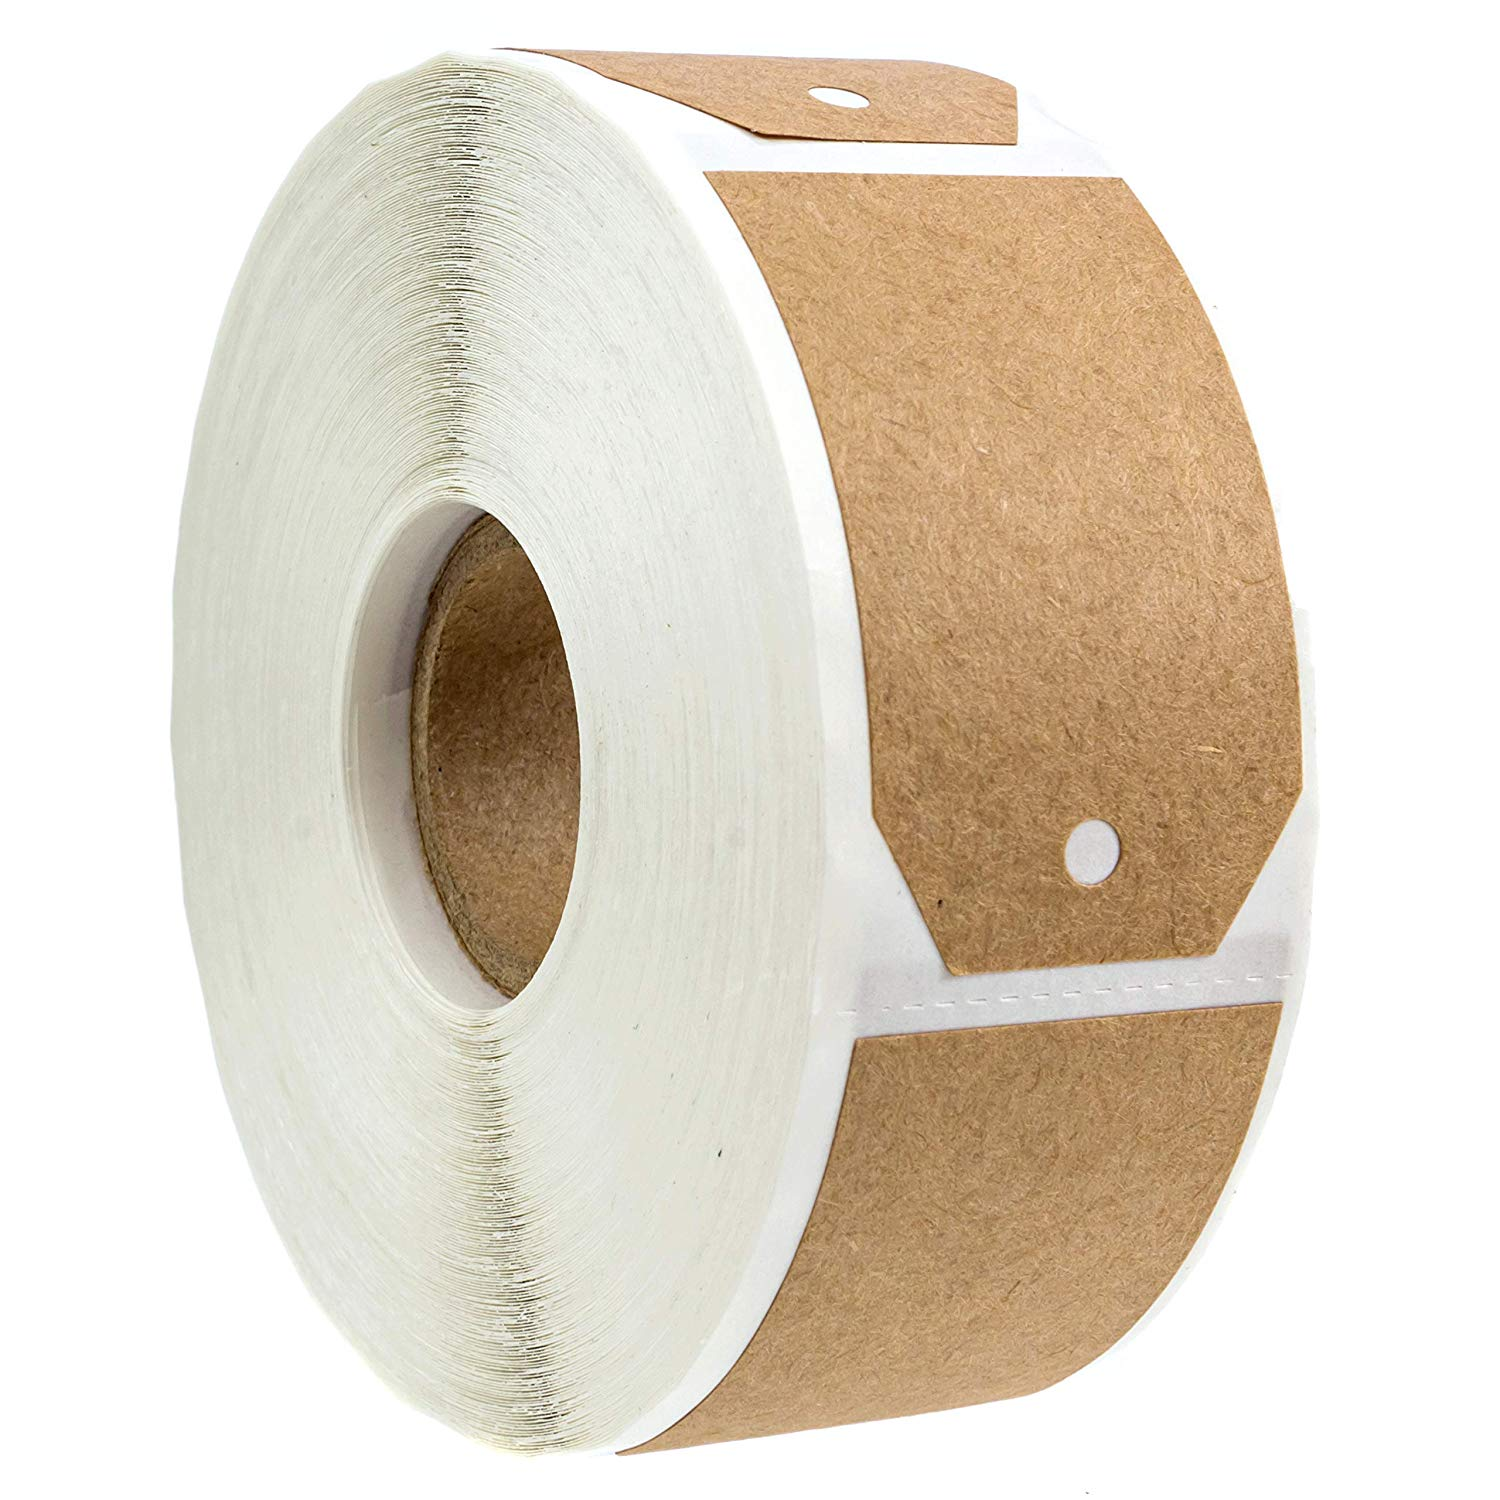 1.15 InchX2 Inch Kraft Gift Tag Stickers / 300 Labels Per Roll/Permanent Adhesive